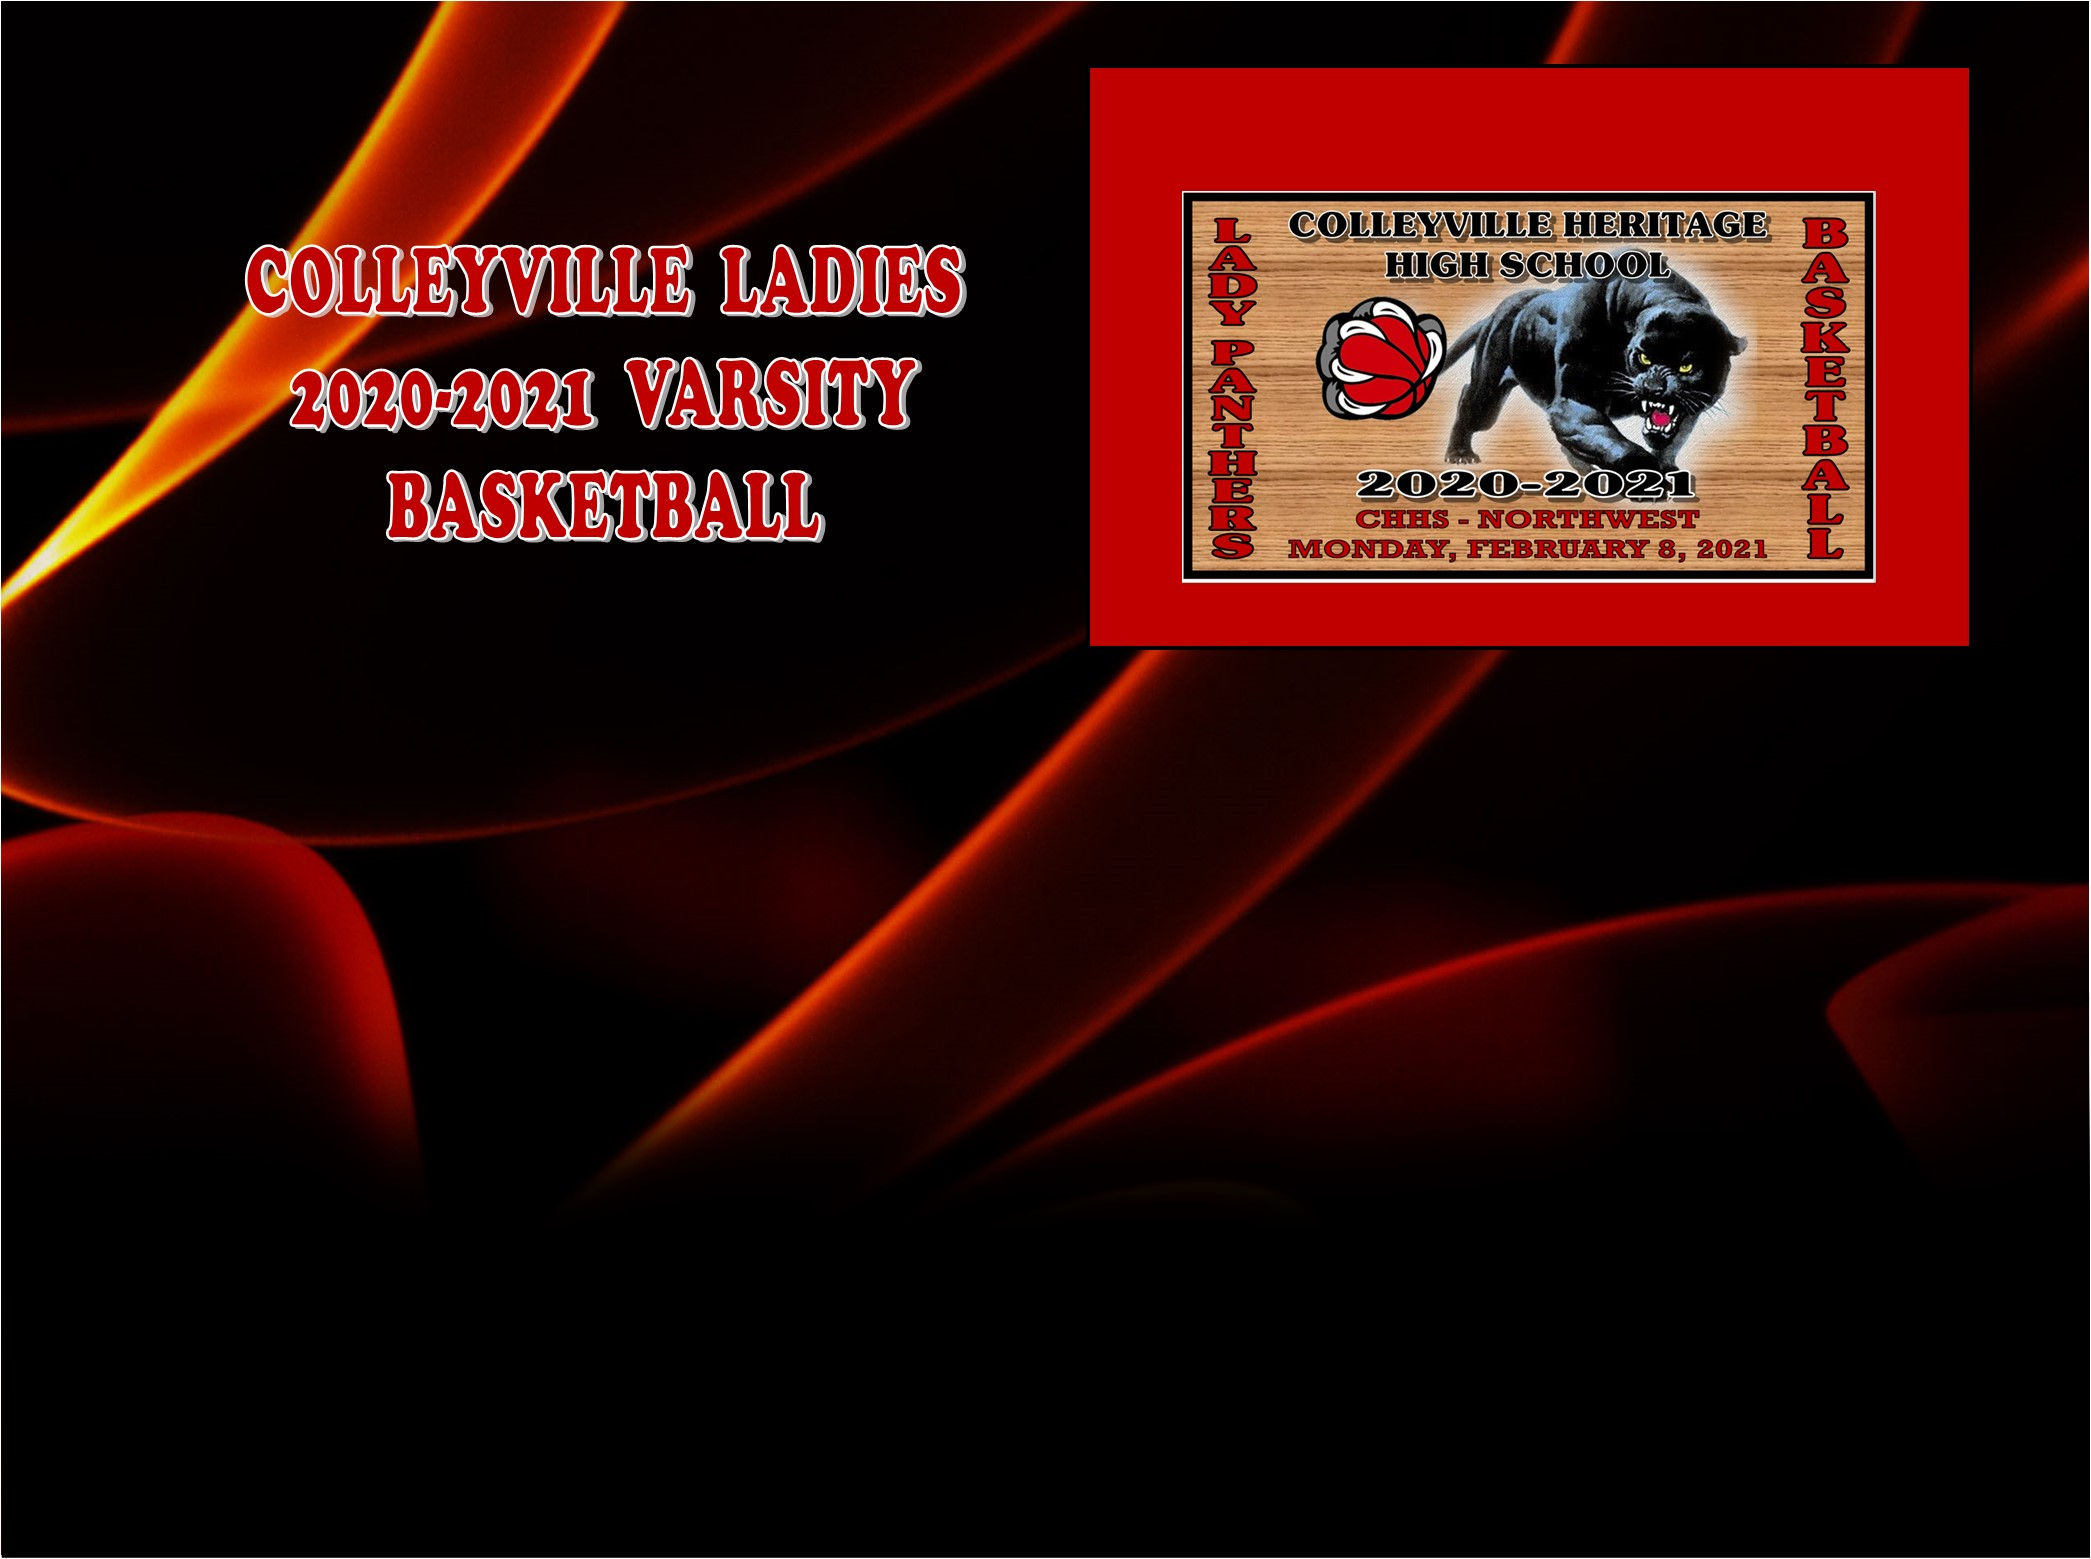 GCISD Ladies Basketball: Colleyville Panthers Shock The Northwest Texans 41-34